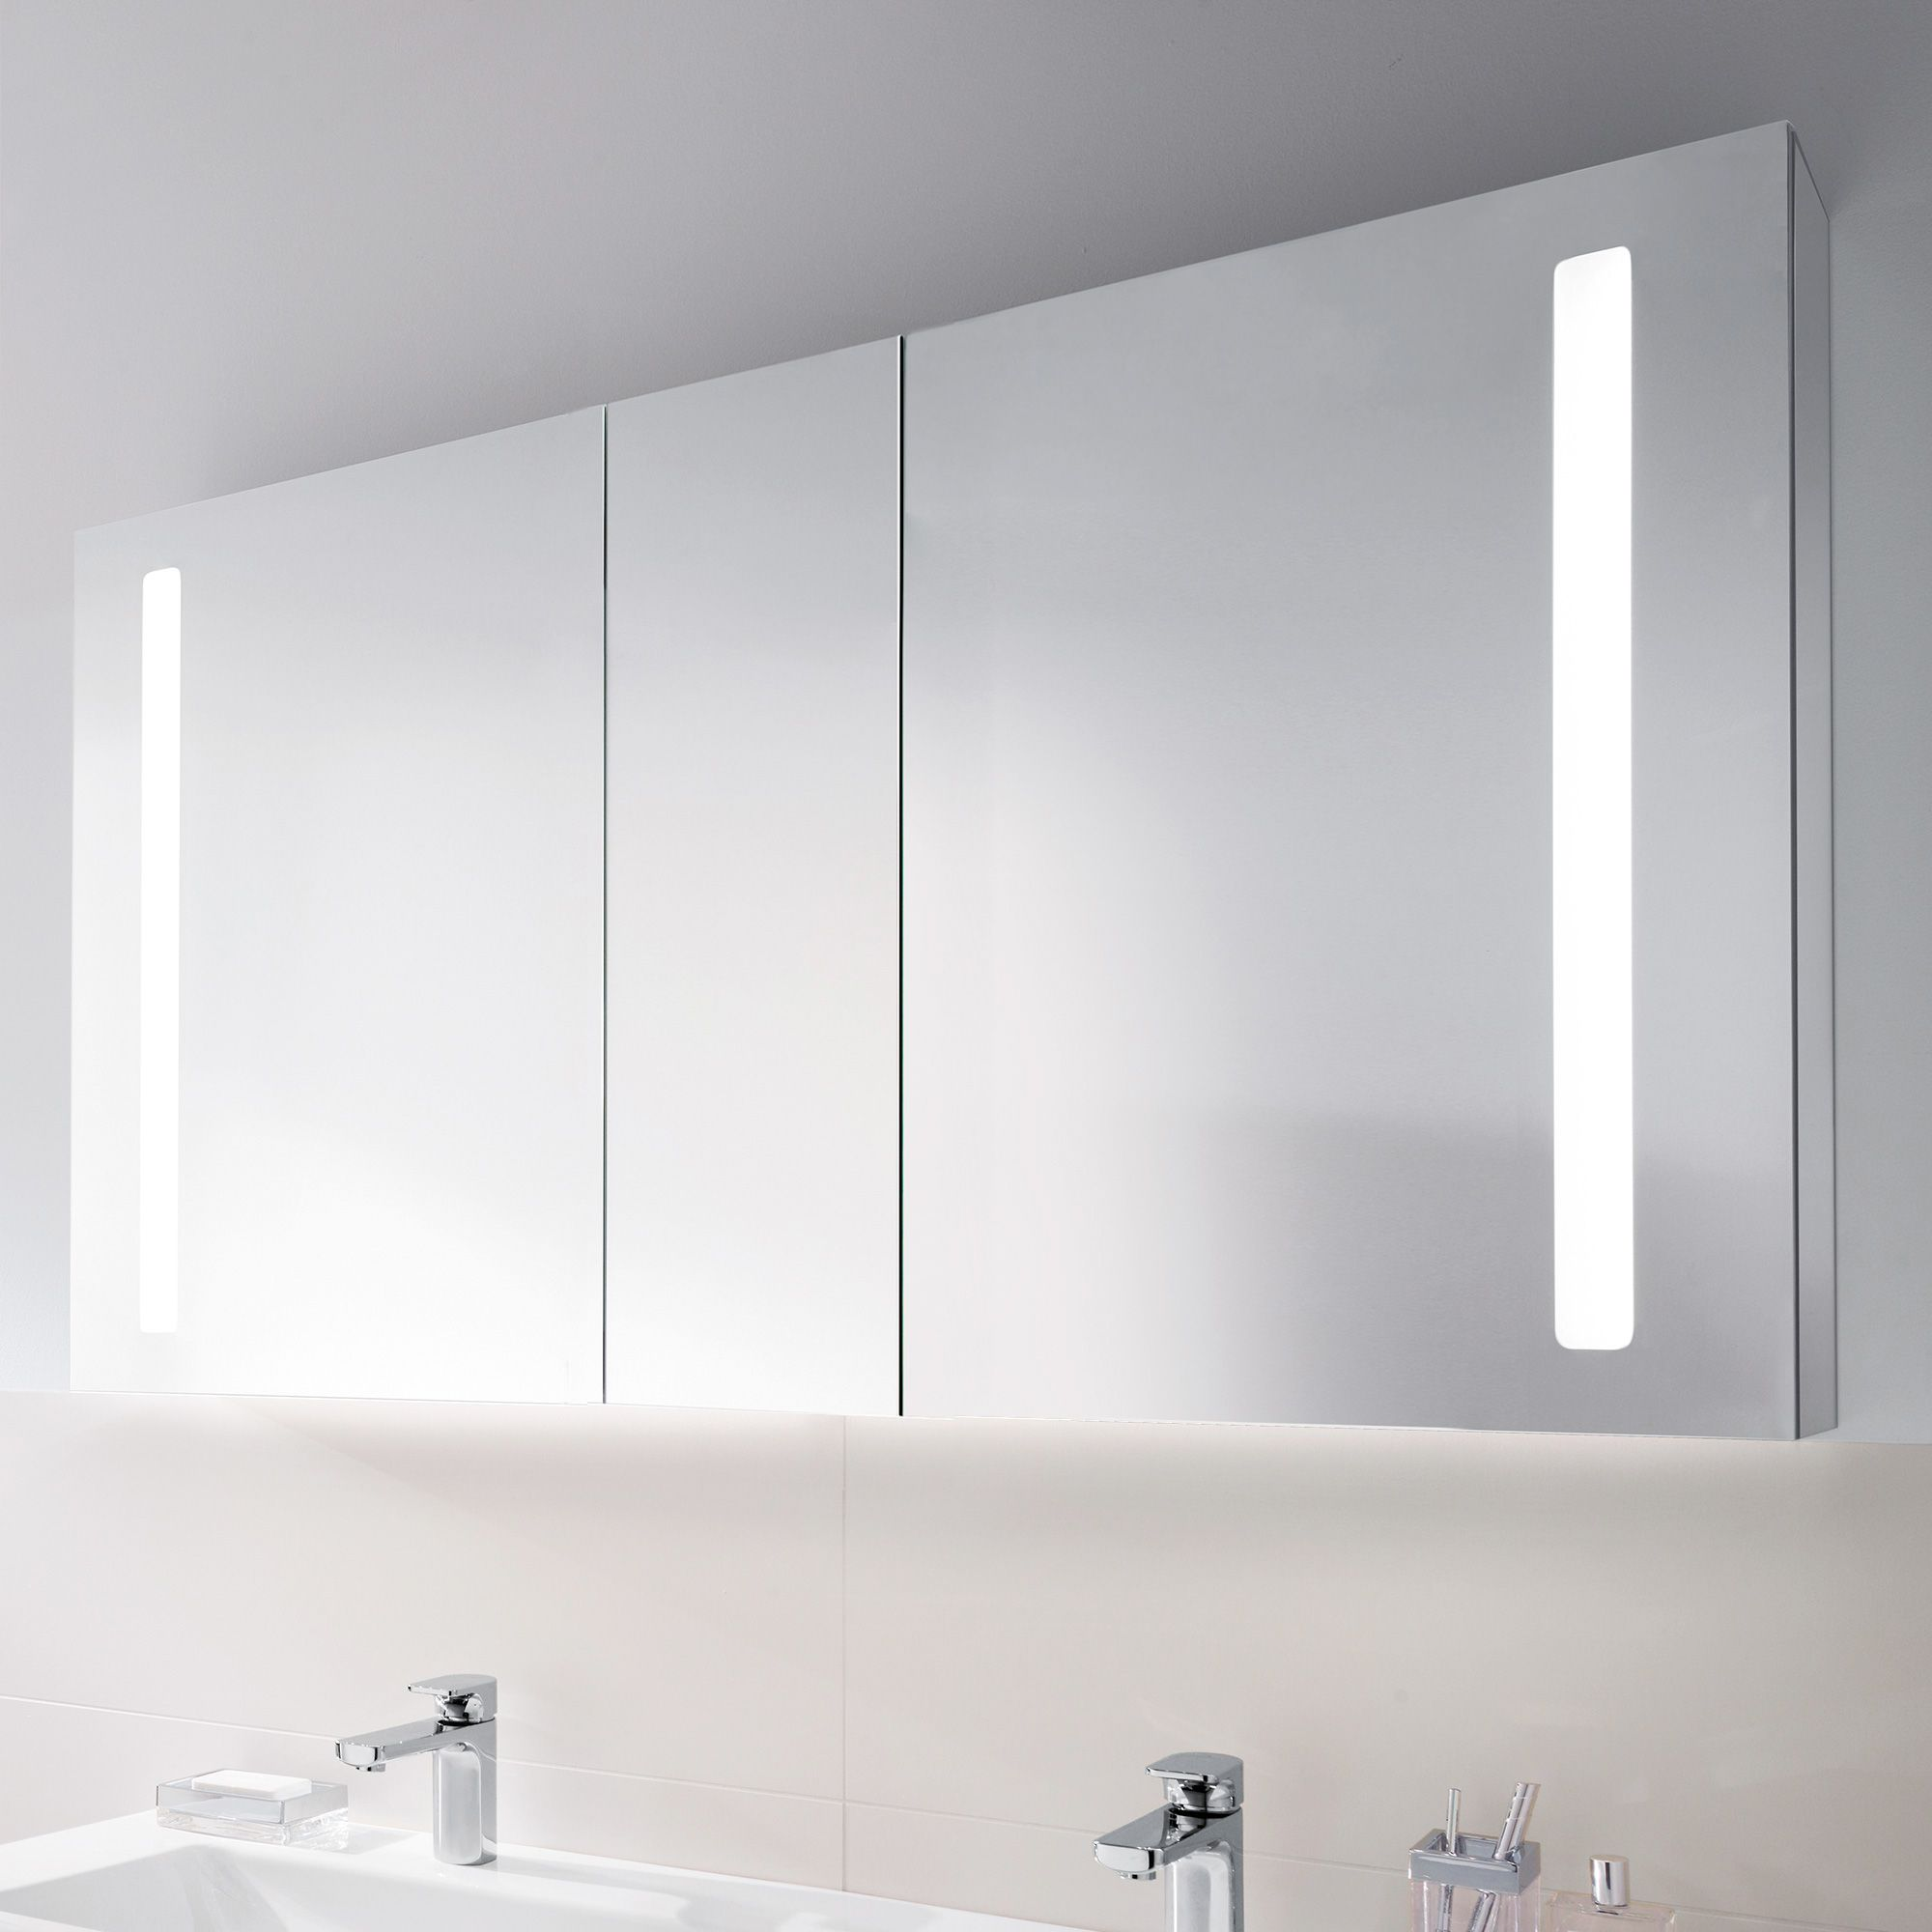 Spiegelschrank Bad Villeroy Boch Villeroy Boch My View 14 Mirror Cabinet With Led Lighting